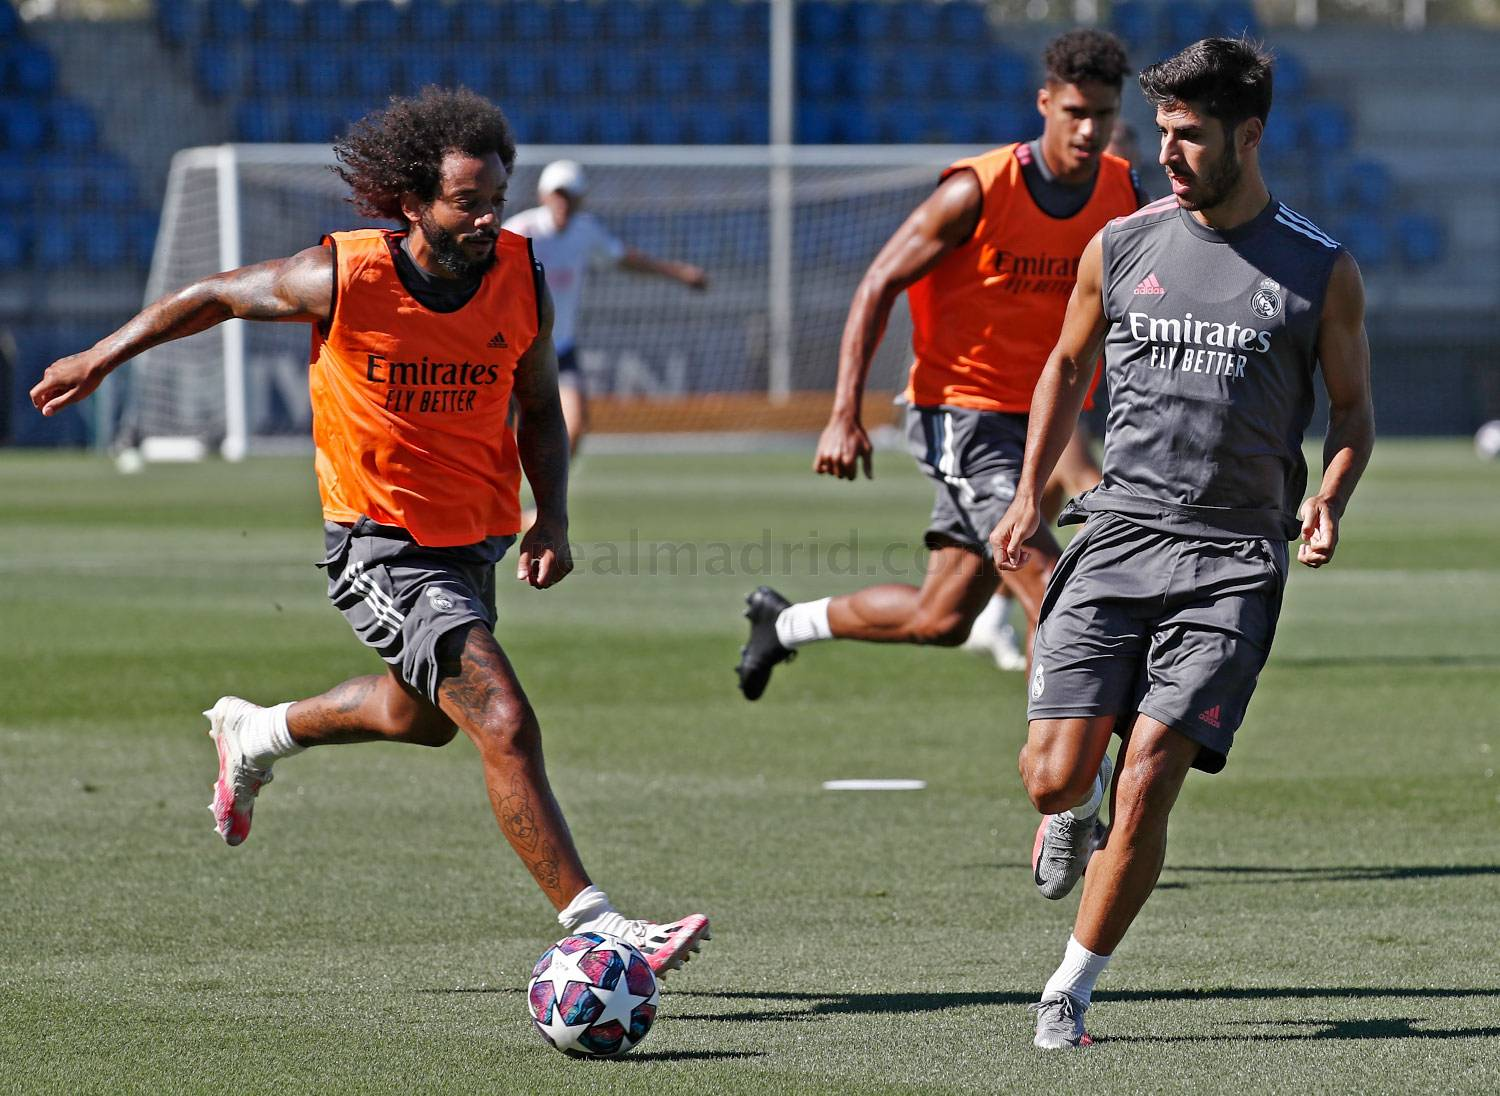 Real Madrid - Entrenamiento del Real Madrid  - 04-08-2020